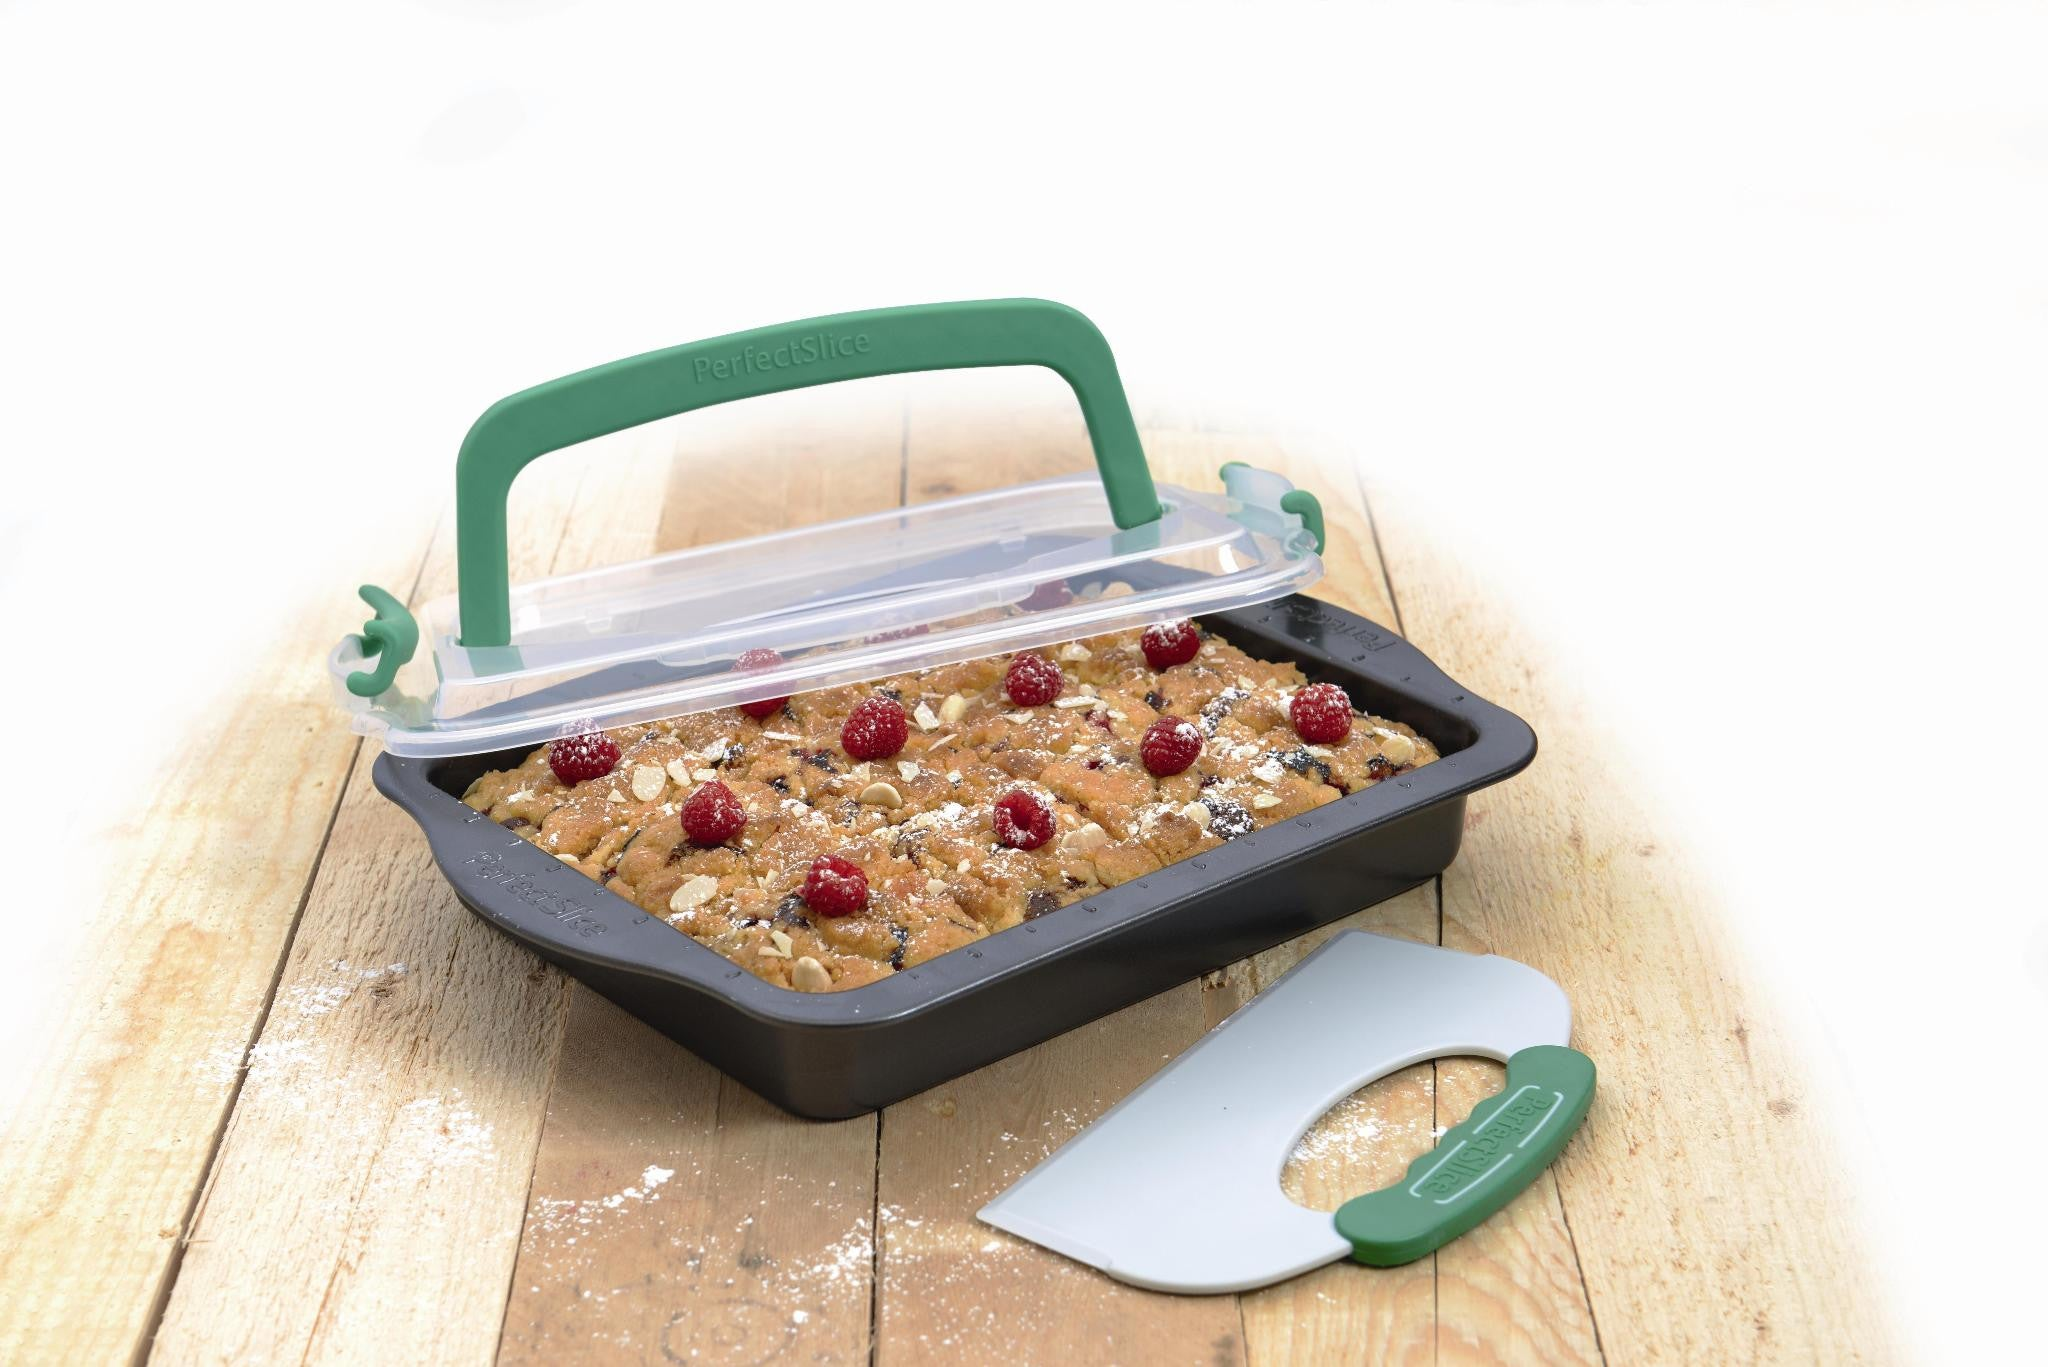 Perfect Slice Covered Rectangular Pan with Slicing Tool